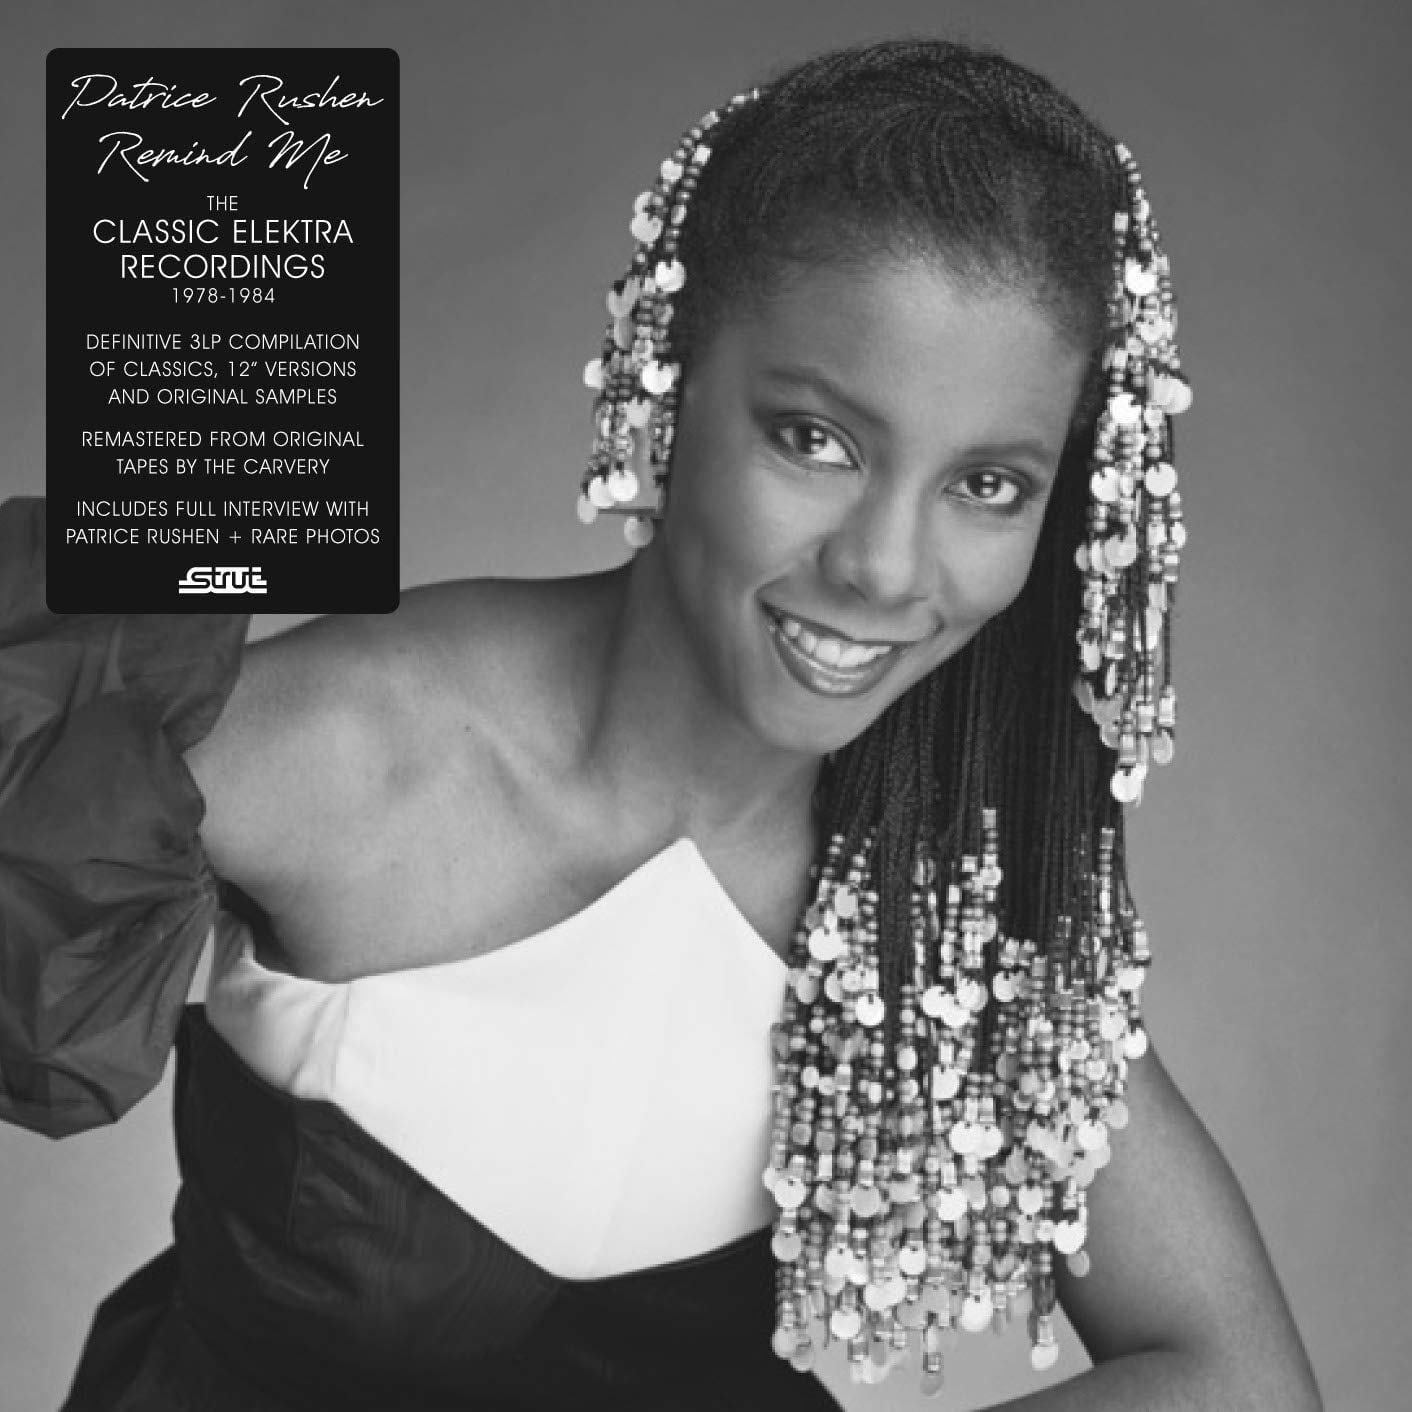 Patrice Rushen - Remind Me: The Classic Elektra Recordings 1978-1984 [3LP] (Vinyl) - Urban Vinyl | Records, Headphones, and more.